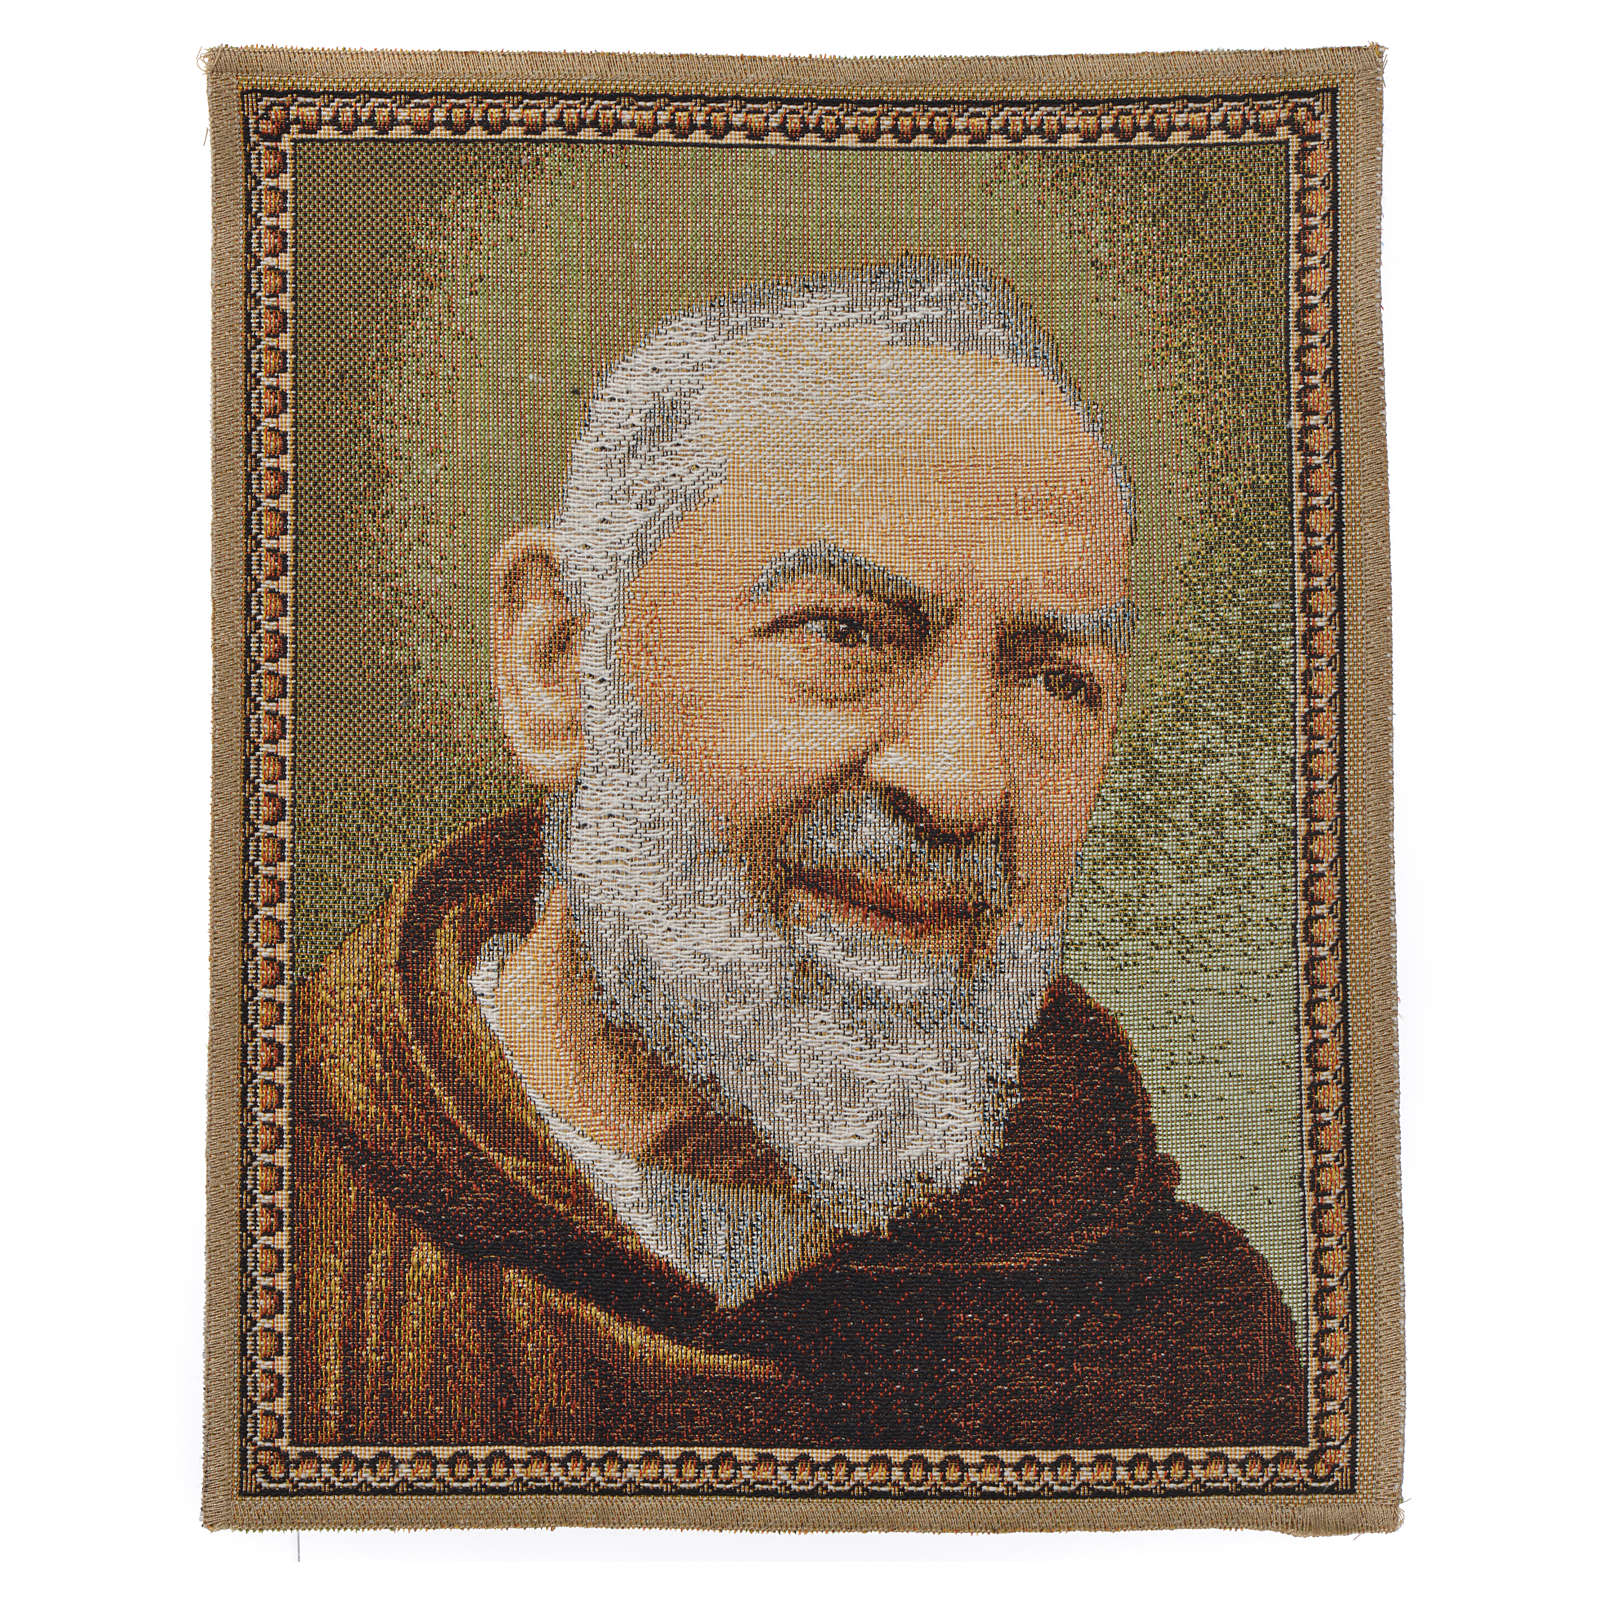 Tapestry Padre Pio 3